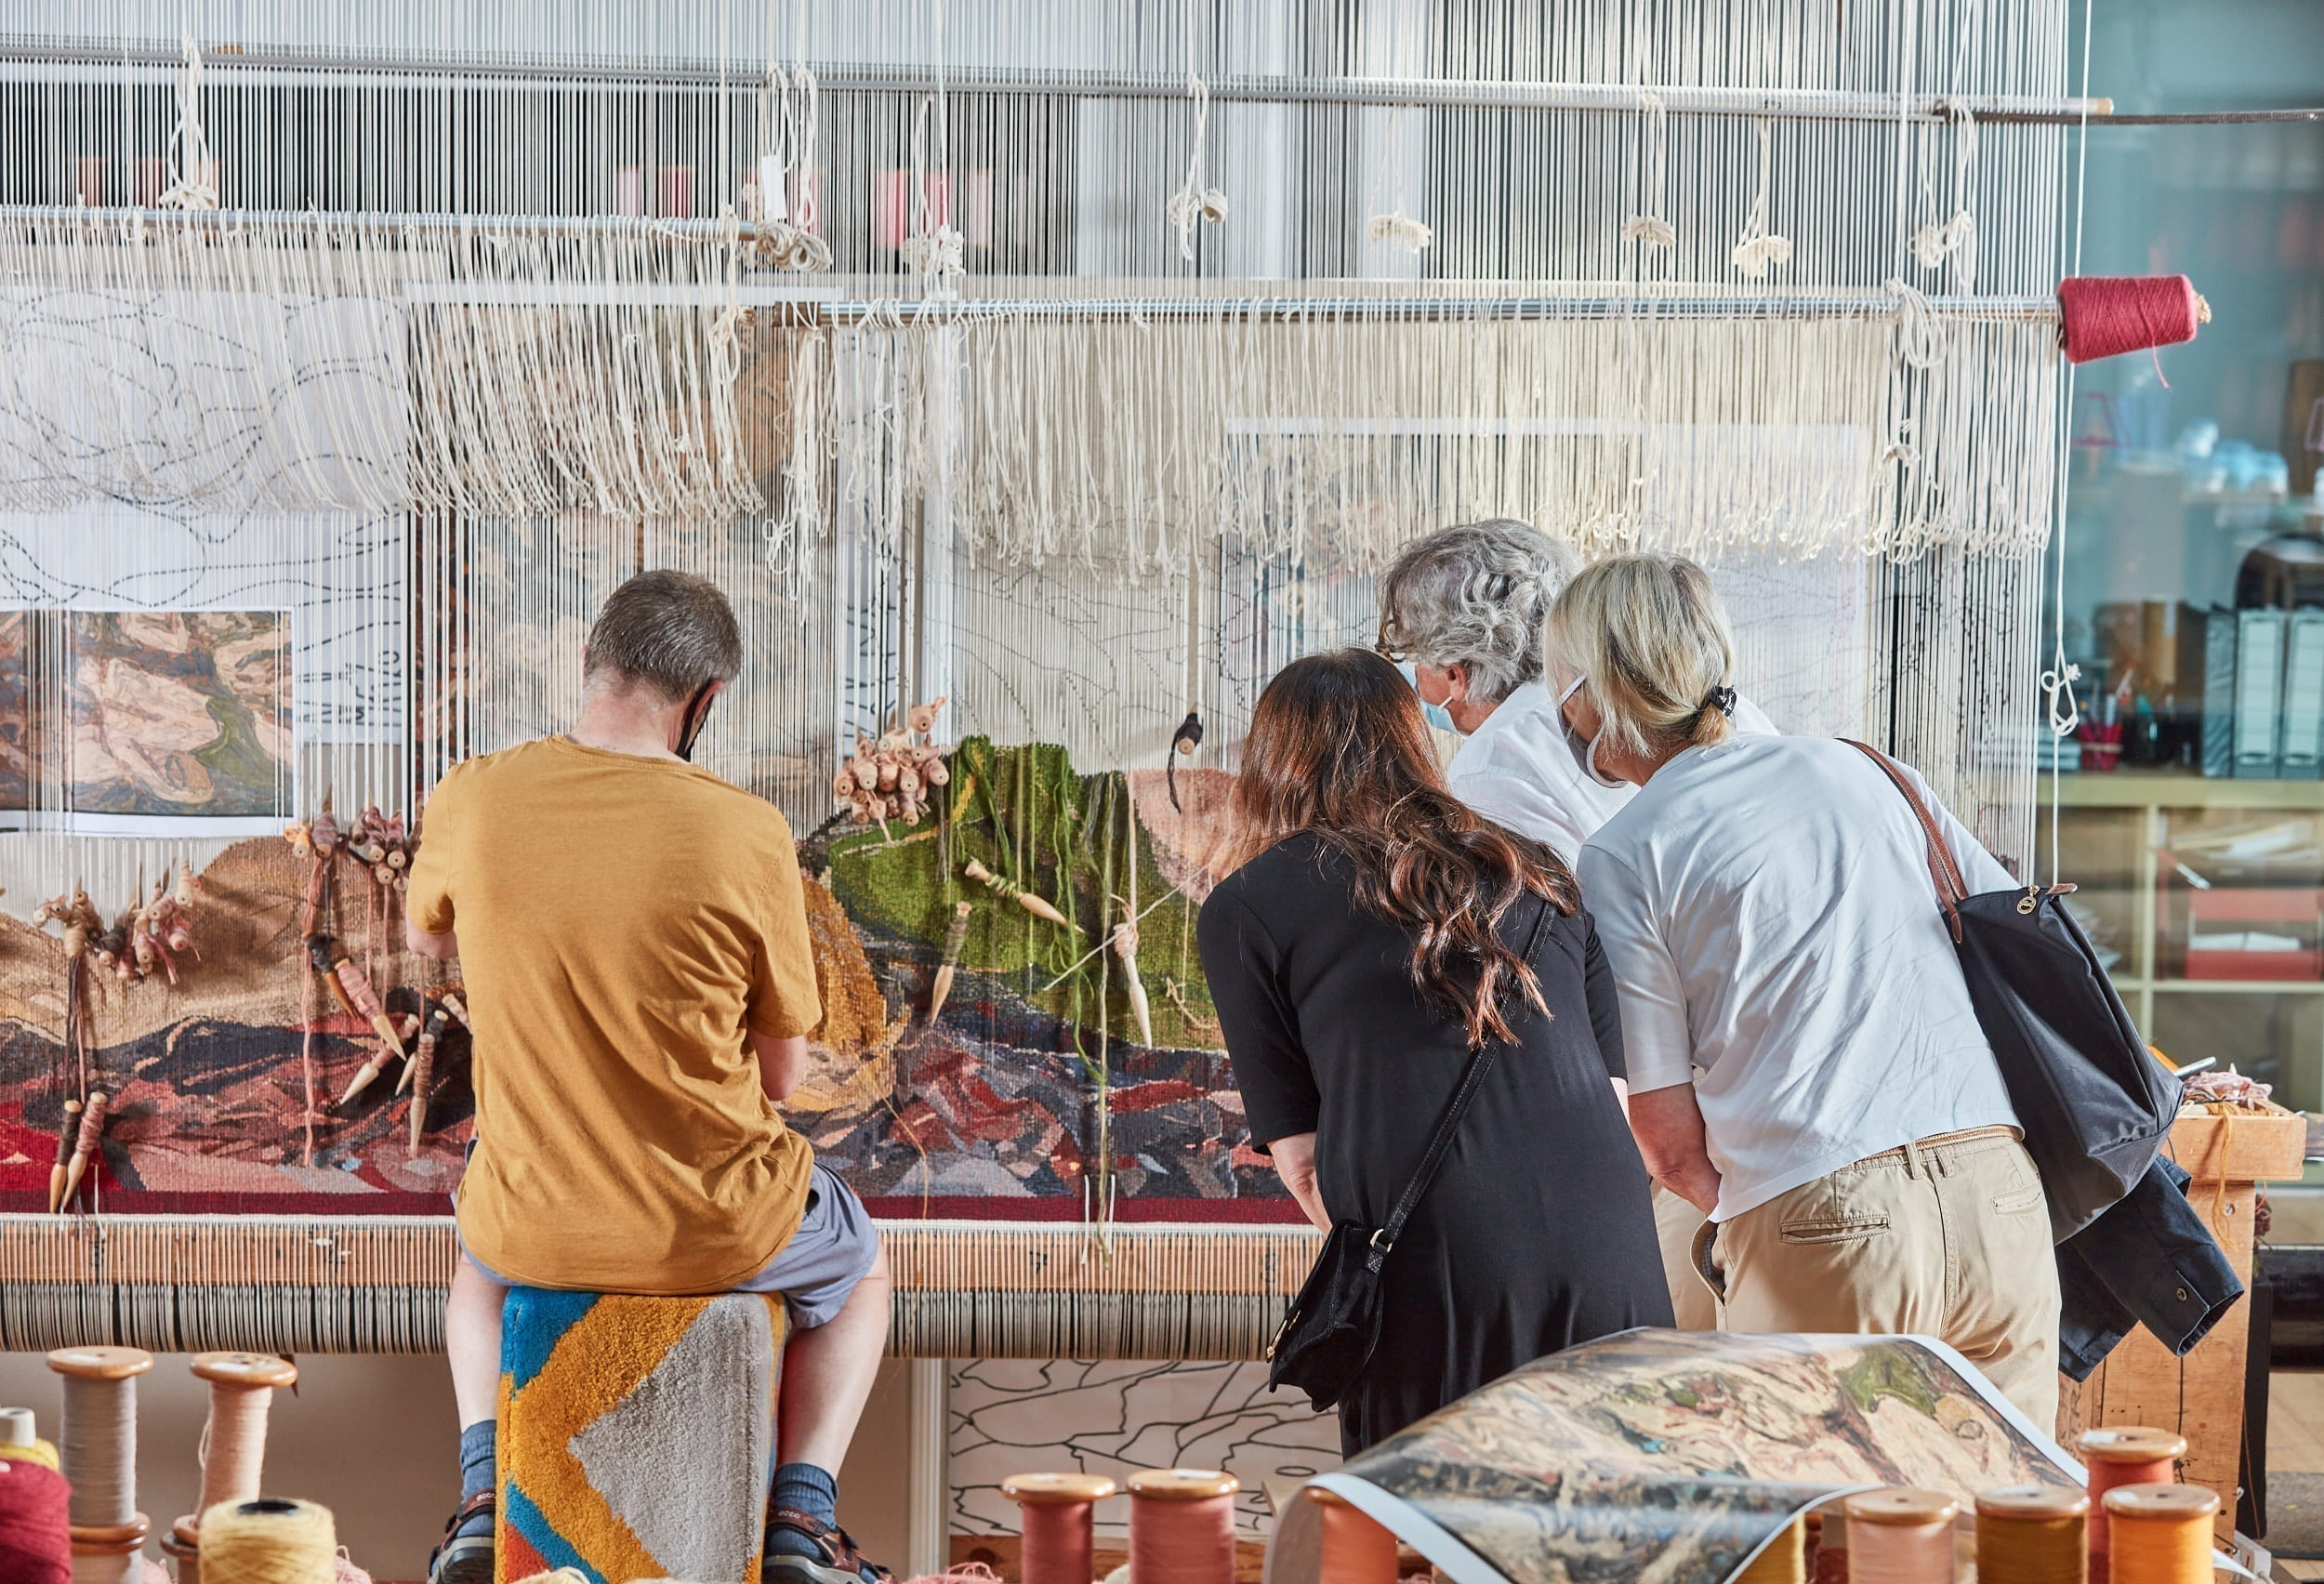 Leon Kossoff and Dovecot Studios, tapestry in progress 5, courtesy of Andy J Mather Photography